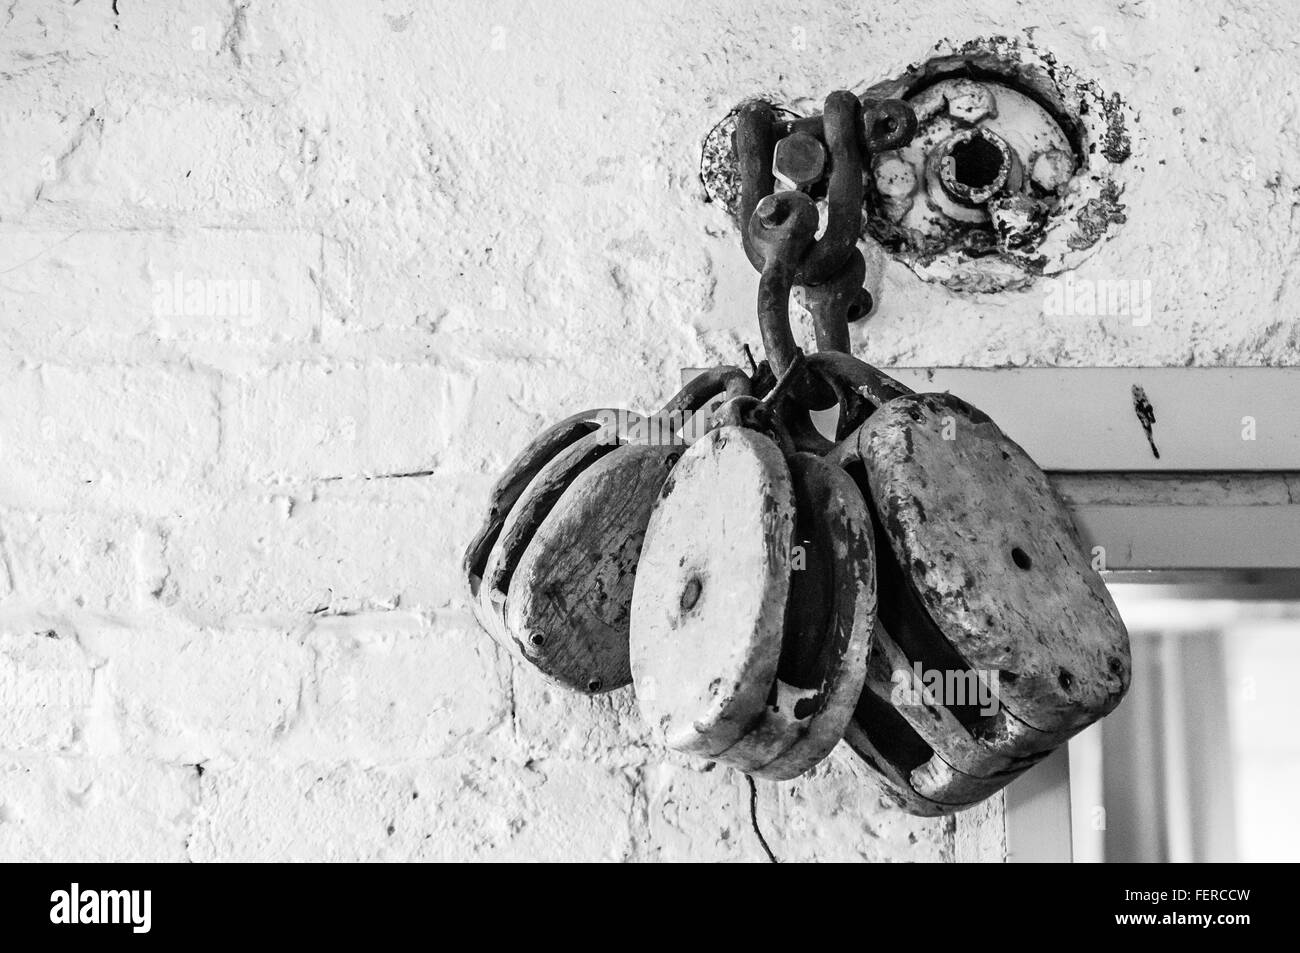 Close-Up Of Pulley Wheels On Wall Stock Photo: 95171689 - Alamy